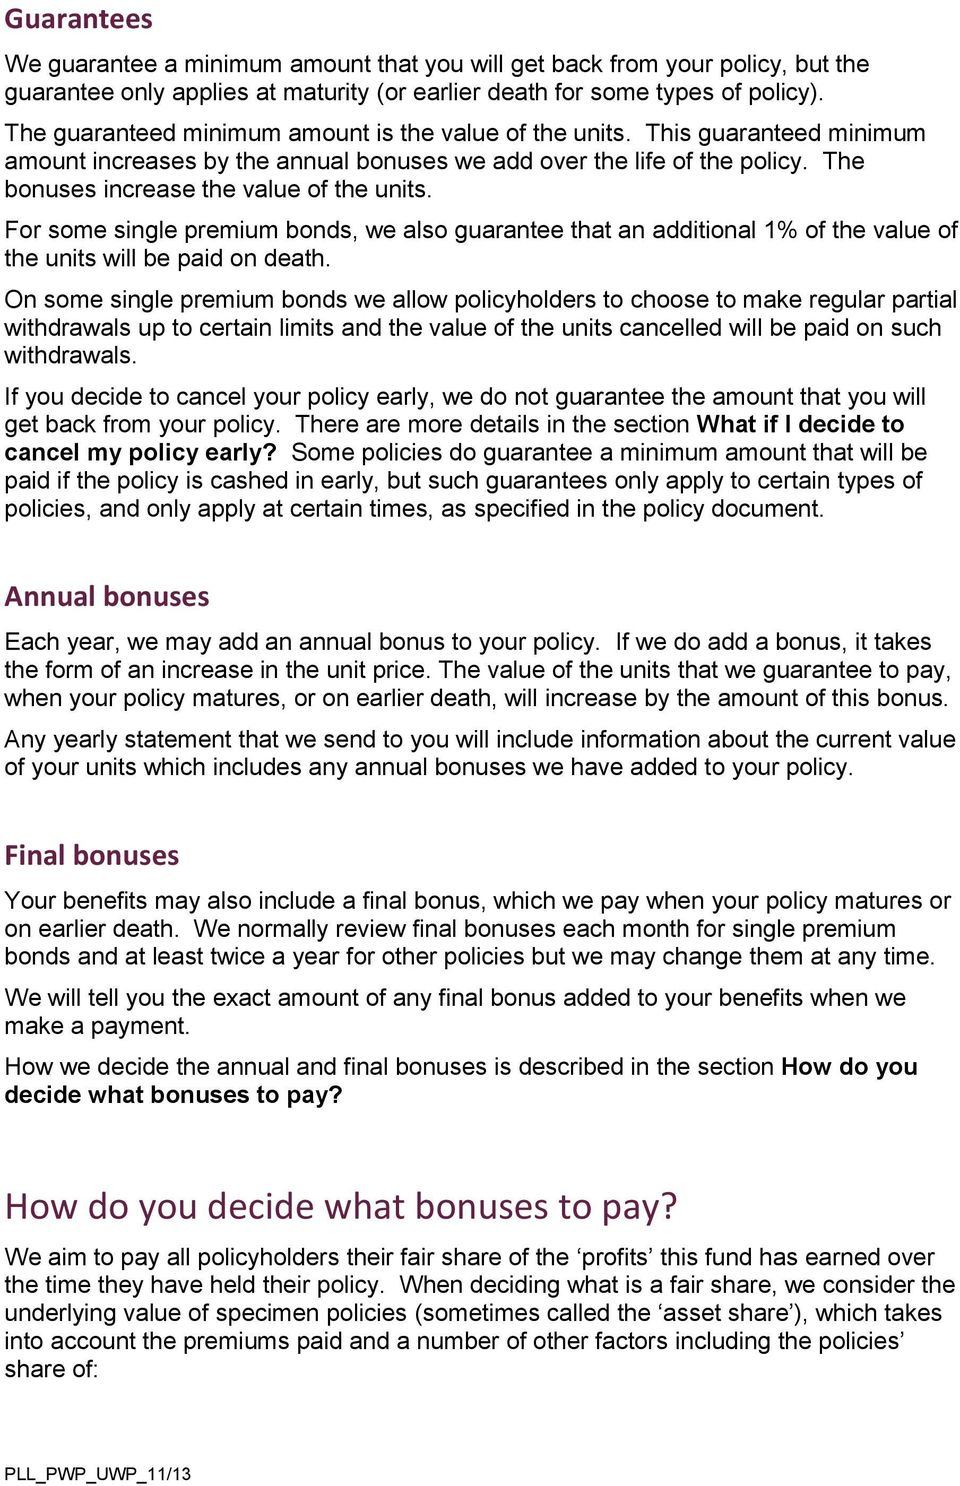 For some single premium bonds, we also guarantee that an additional 1% of the value of the units will be paid on death.